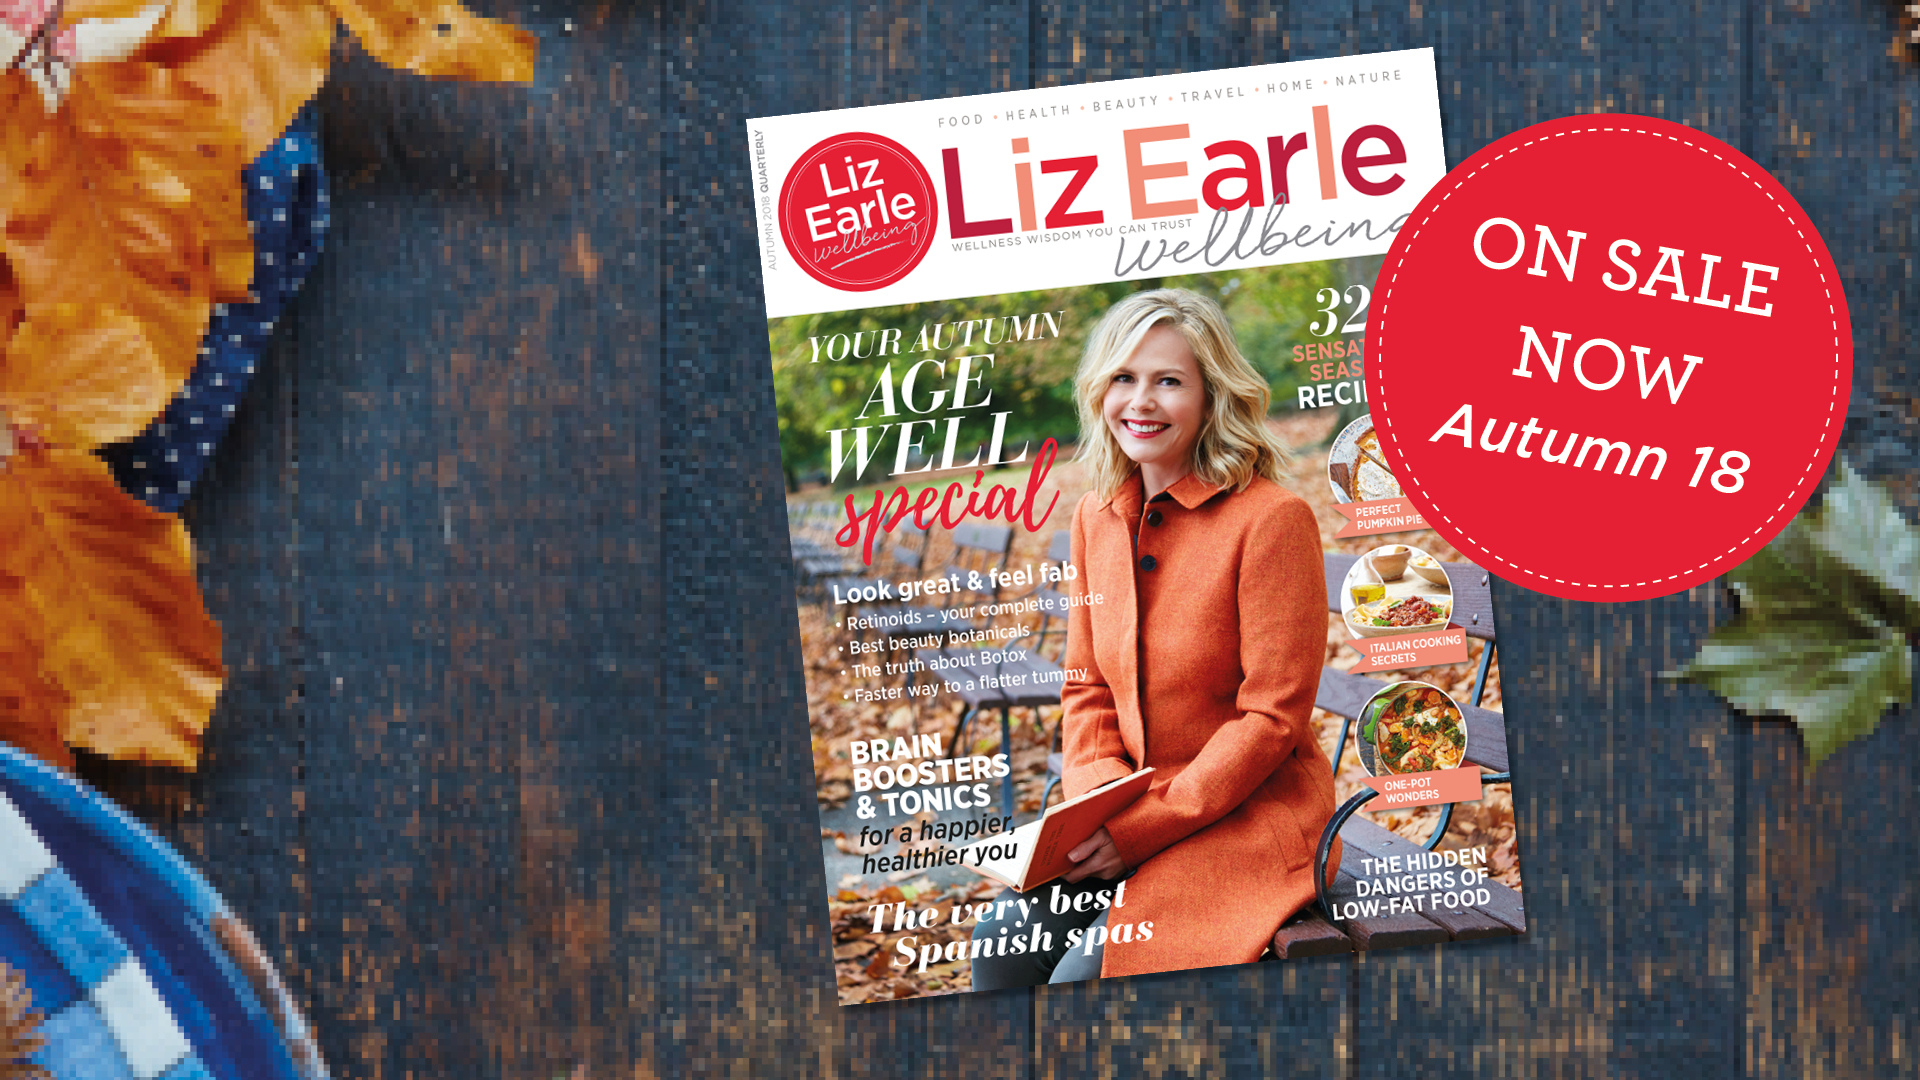 Liz Earle Wellbeing - Autumn 2018 edition on sale now